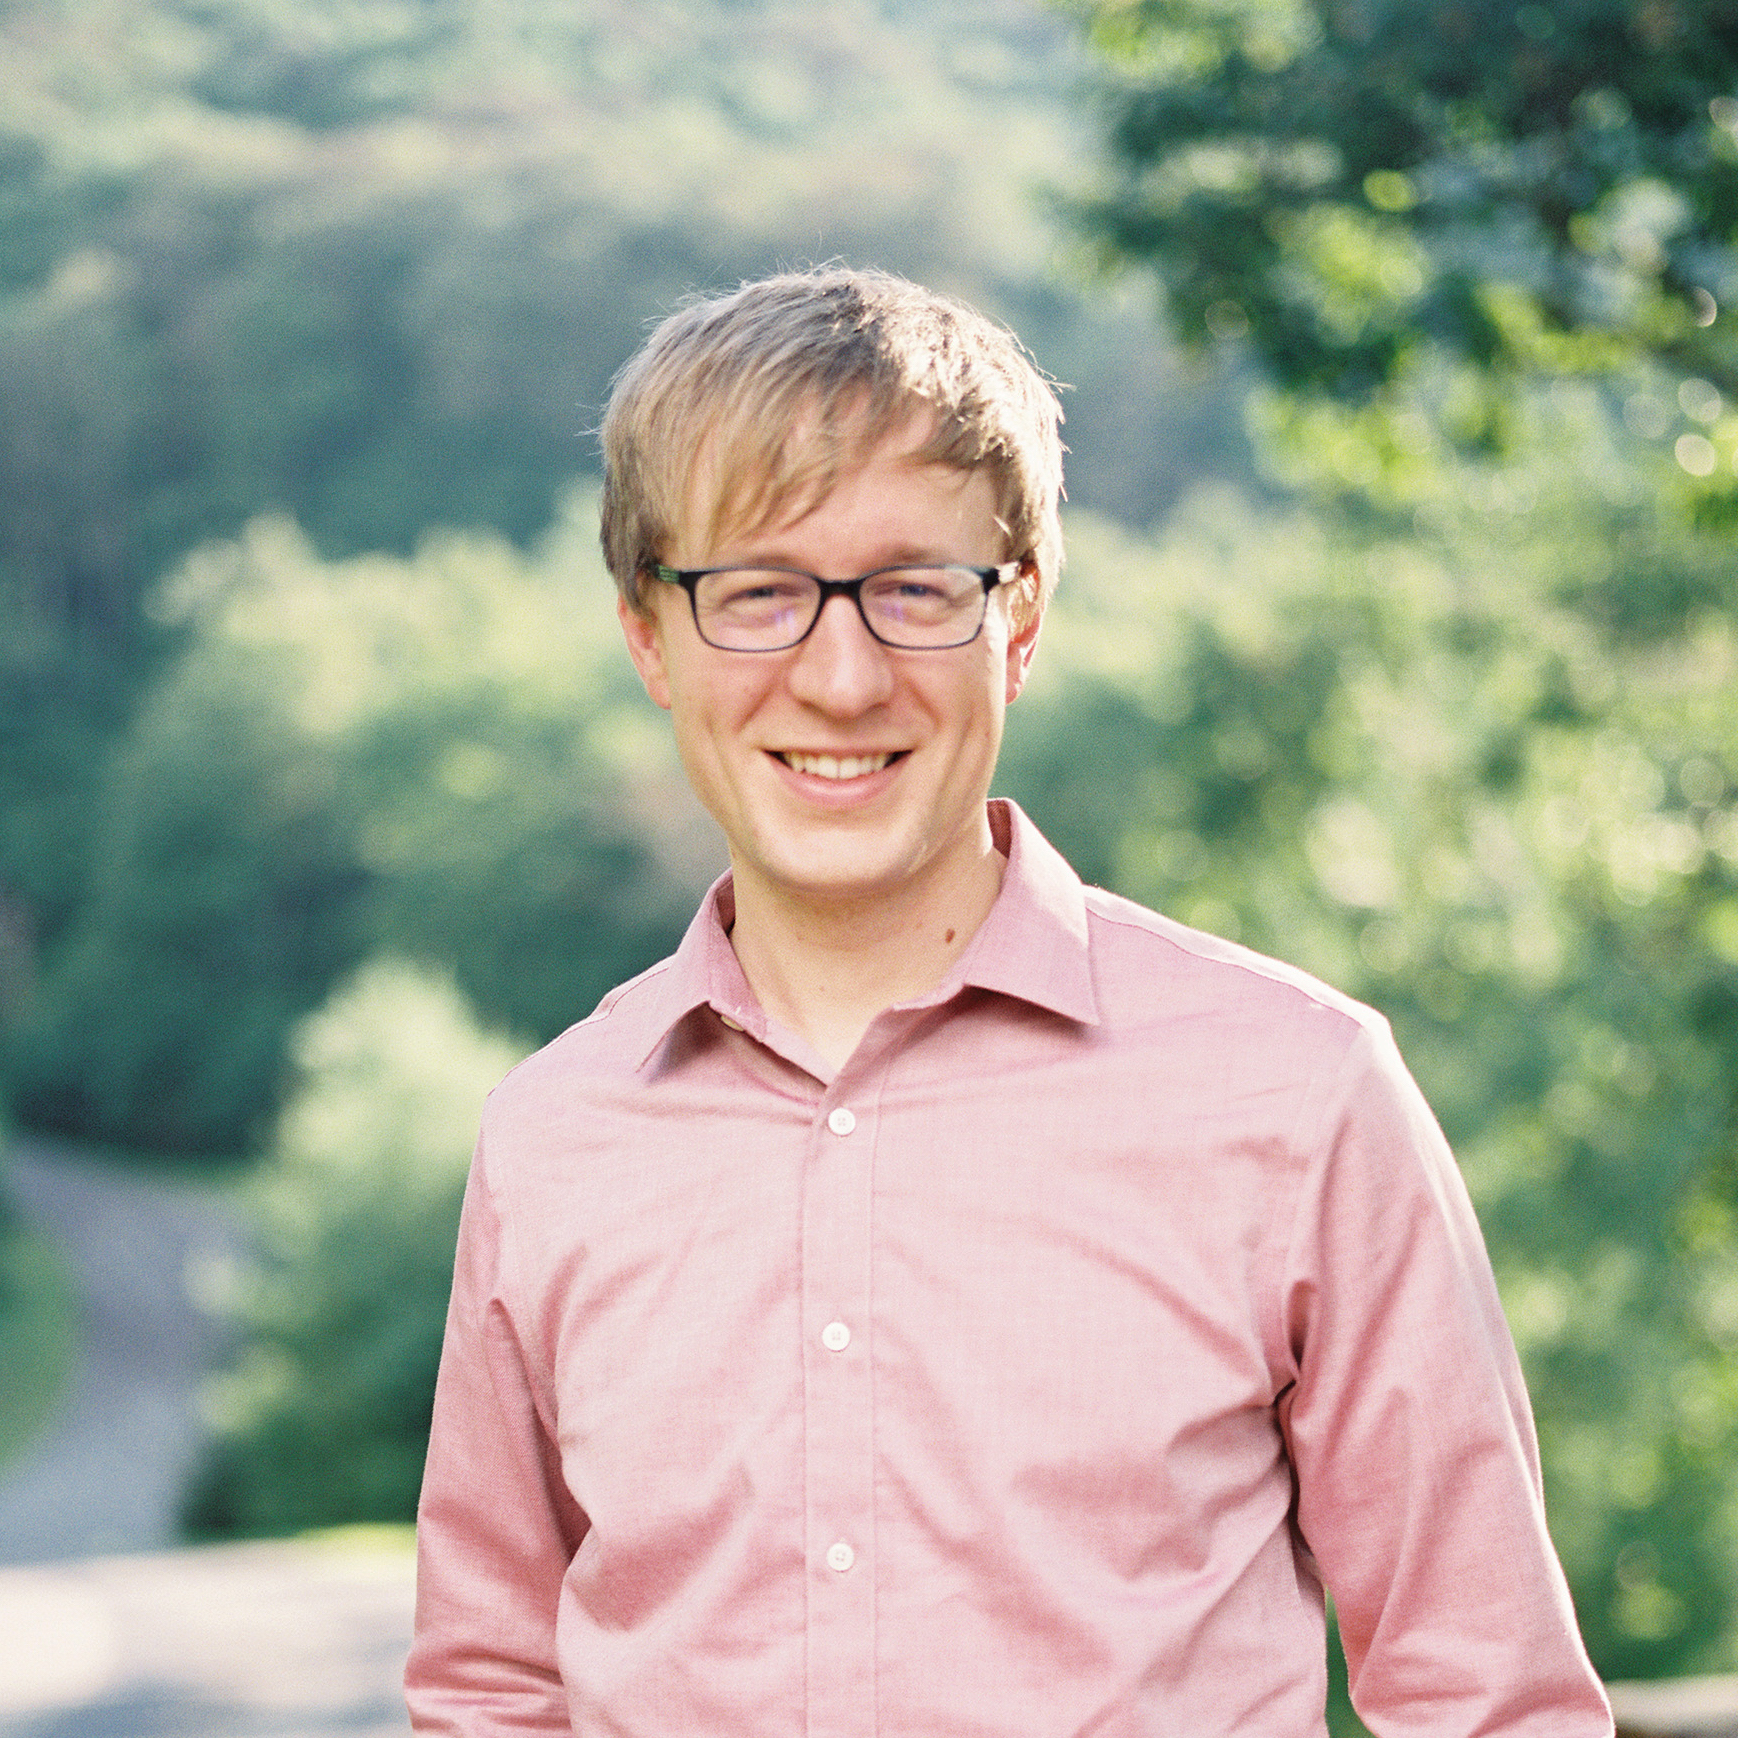 JESSE PERRY - Founder/Owner of Team Flower and Head of OperationsJesse grew up in large family in Ohio where his entrepreneurial skills really blossomed: he'd charge his brother or sister to take something to the mailbox, he'd sell old things to other siblings, and he once operated a donut shop from under his bed. He loves everything about small business, from running his own to supporting others in their entrepreneurial endeavors. He makes sure everything at Team Flower runs smoothly—marketing strategy, coding every technological aspect of the site, everything!—so flower pros have the opportunity to connect and grow.Get to know Jesse's industry experienceWhat's your favorite thing about working with flowers?My wife! 😉 But truthfully, I love the openness everyone in the industry displays and the true community I've seen by people helping one another out.What's an interesting fact about yourself?I'm the youngest of eight siblings (hence all the sibling commerce)!Favorite food: A really, really good burger.